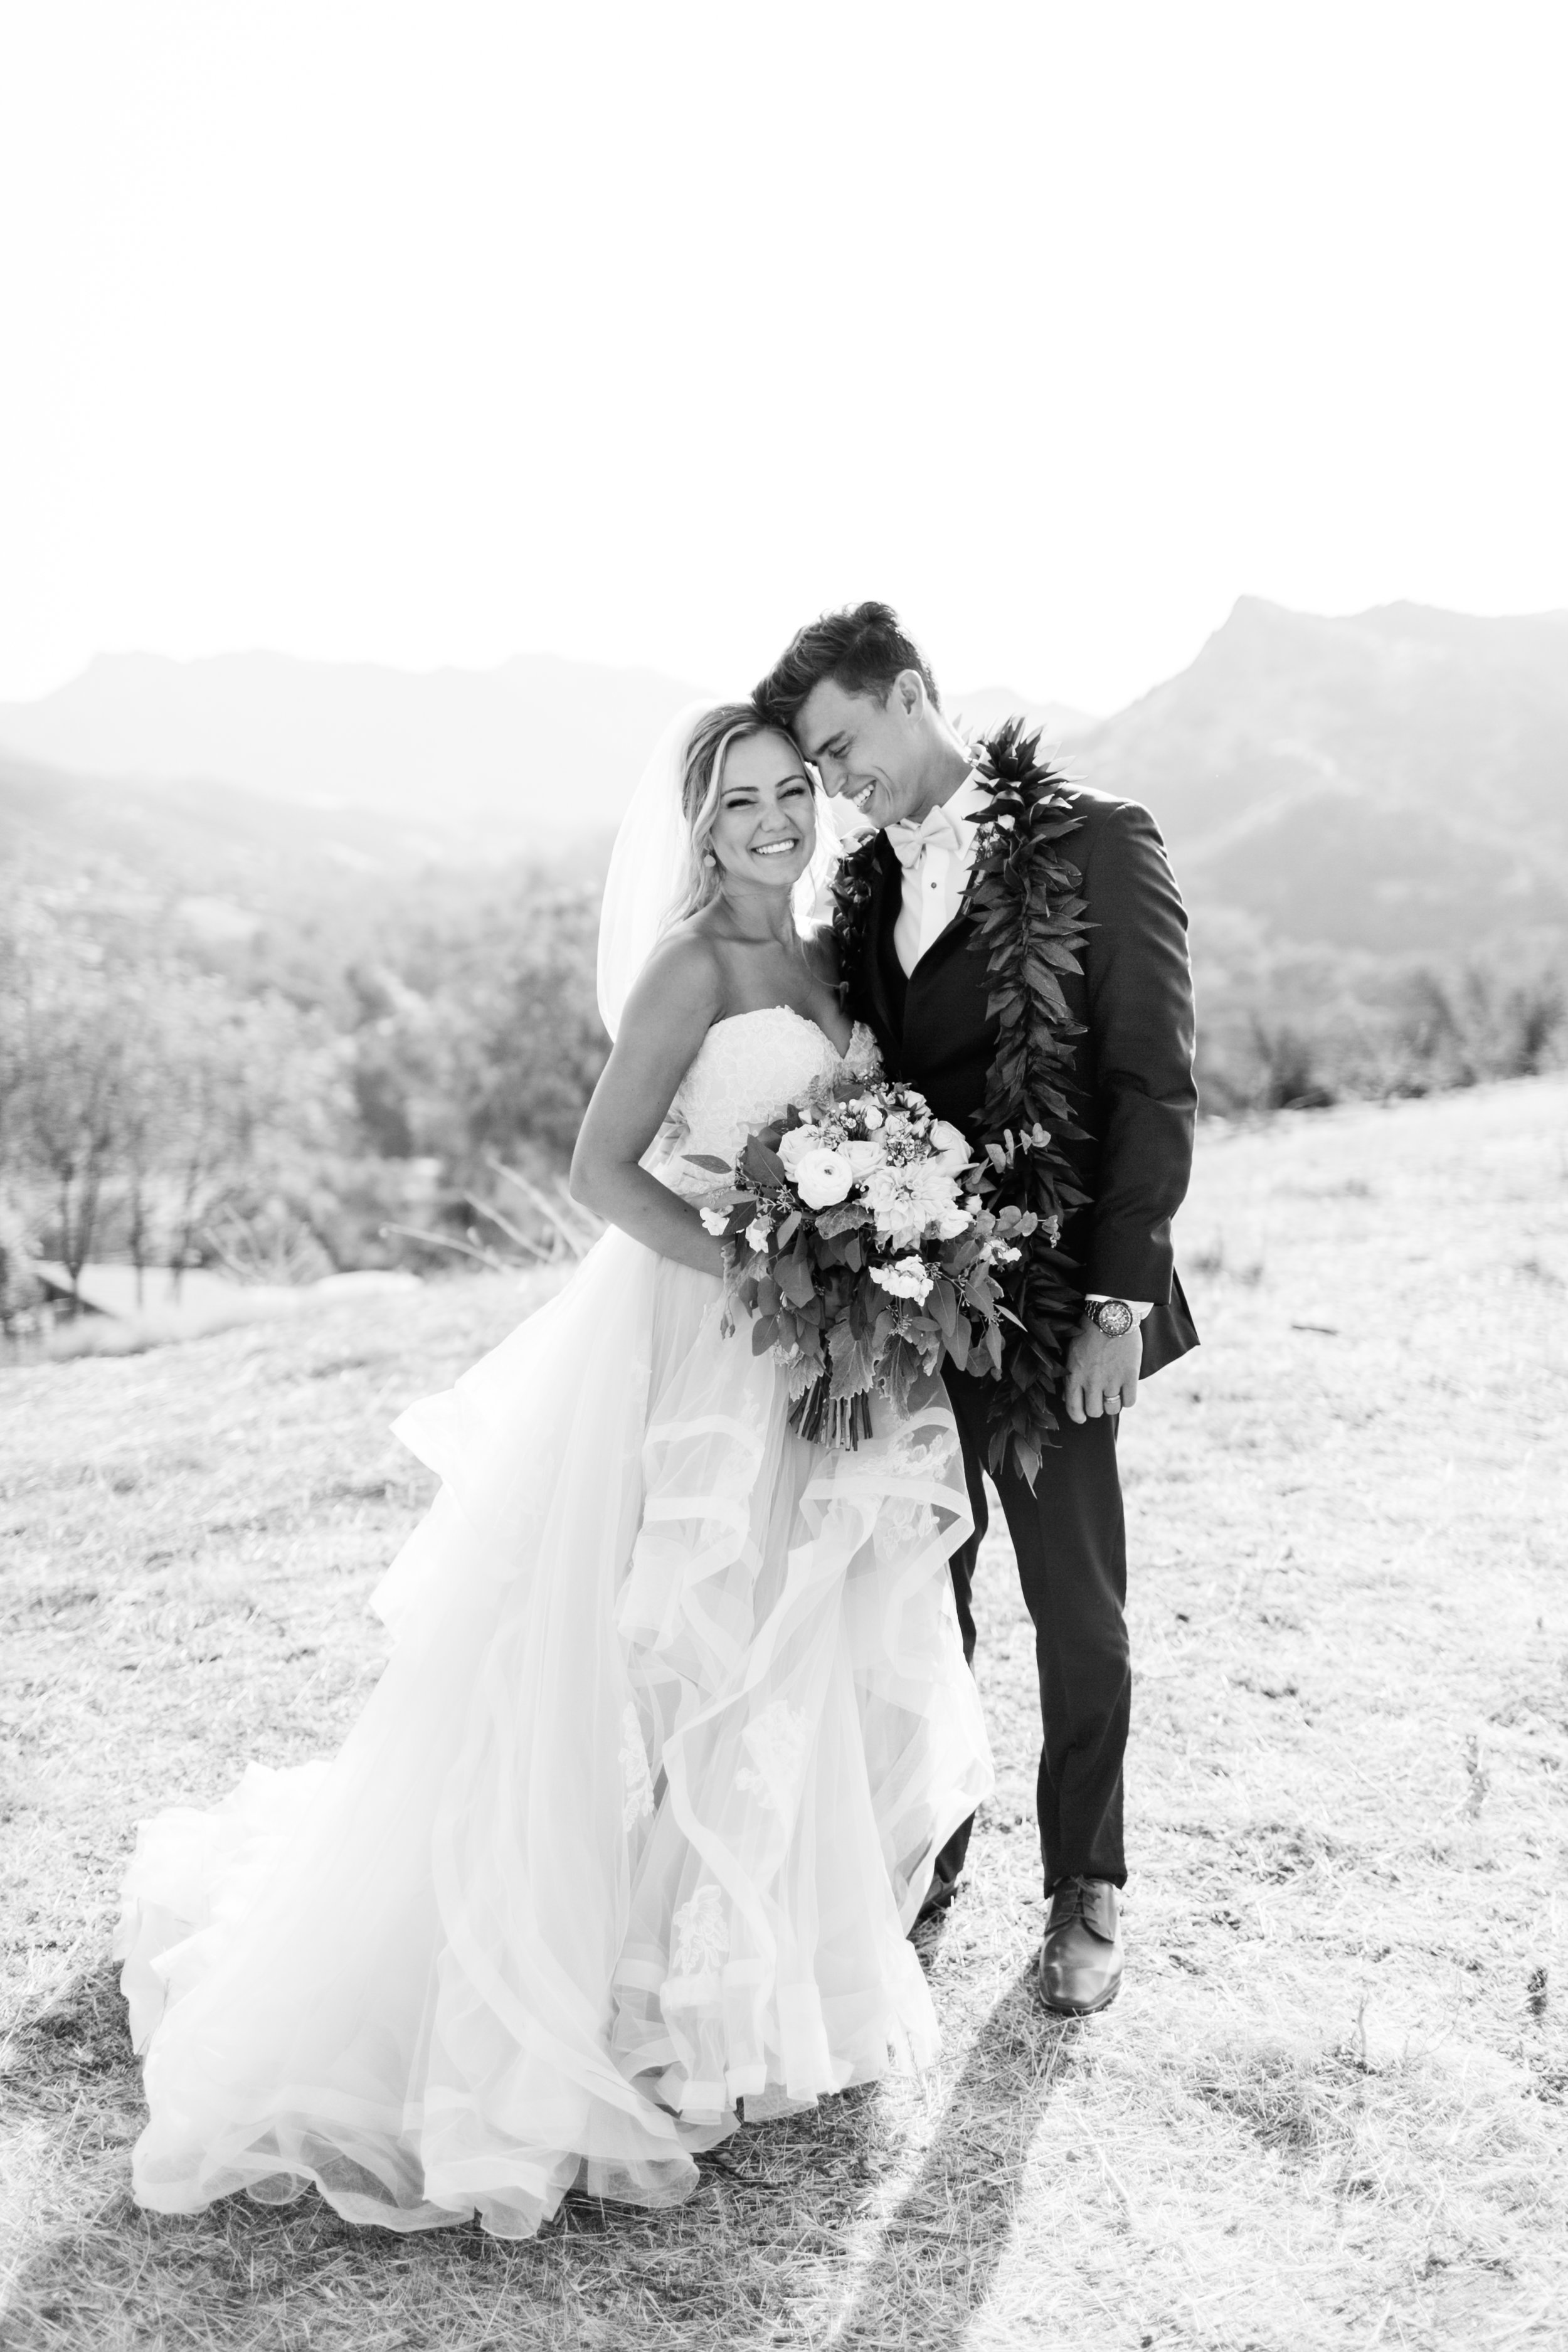 """Jess & Ben - """"Our wedding day was 95 degrees, my hair was stuck to my neck, yet she made my husband and I look as if we just stepped out of a fairytale. Her spunk and energy brought smiles out of everyone from our baby cousins to our grandma and grandpas. Now that all is said and done, our family has her photos to cherish forever; both moments my husband and I witnessed at our wedding, and moments that were sheer joy to first see while looking through our finished album. Booking Sara was the most confident choice I made in wedding planning, and she was hands down our best vendor! Thank you, Sara! We were honored to have you be a part of the most important day of our lives."""